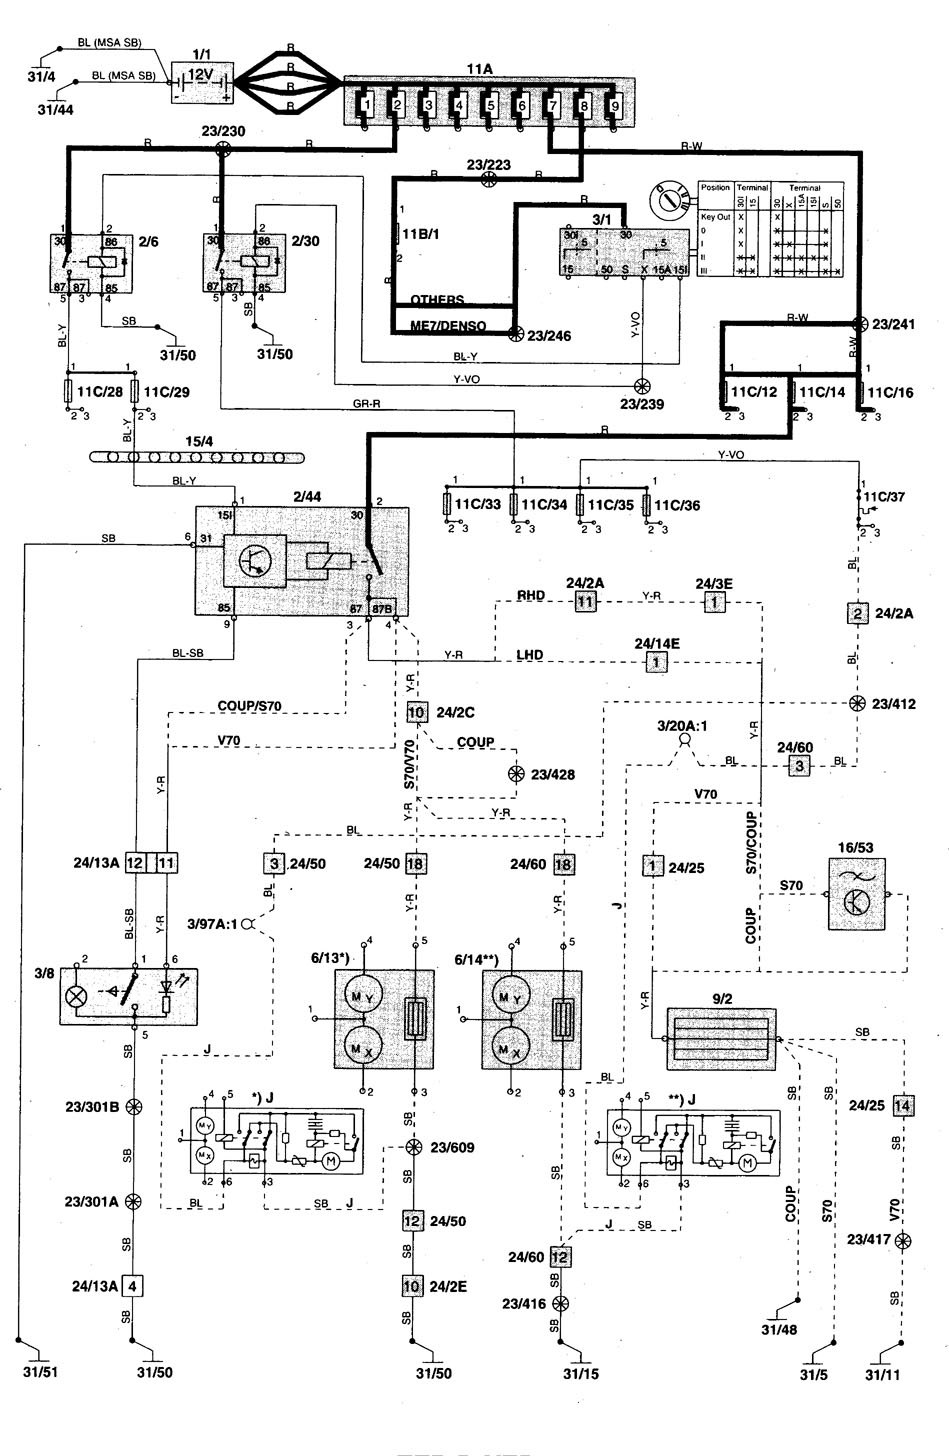 Heated Seat Wiring Diagram Volvo V70 Explained Diagrams Color Codes Interesting 1998 Contemporary Best Image T5 Engine Coded